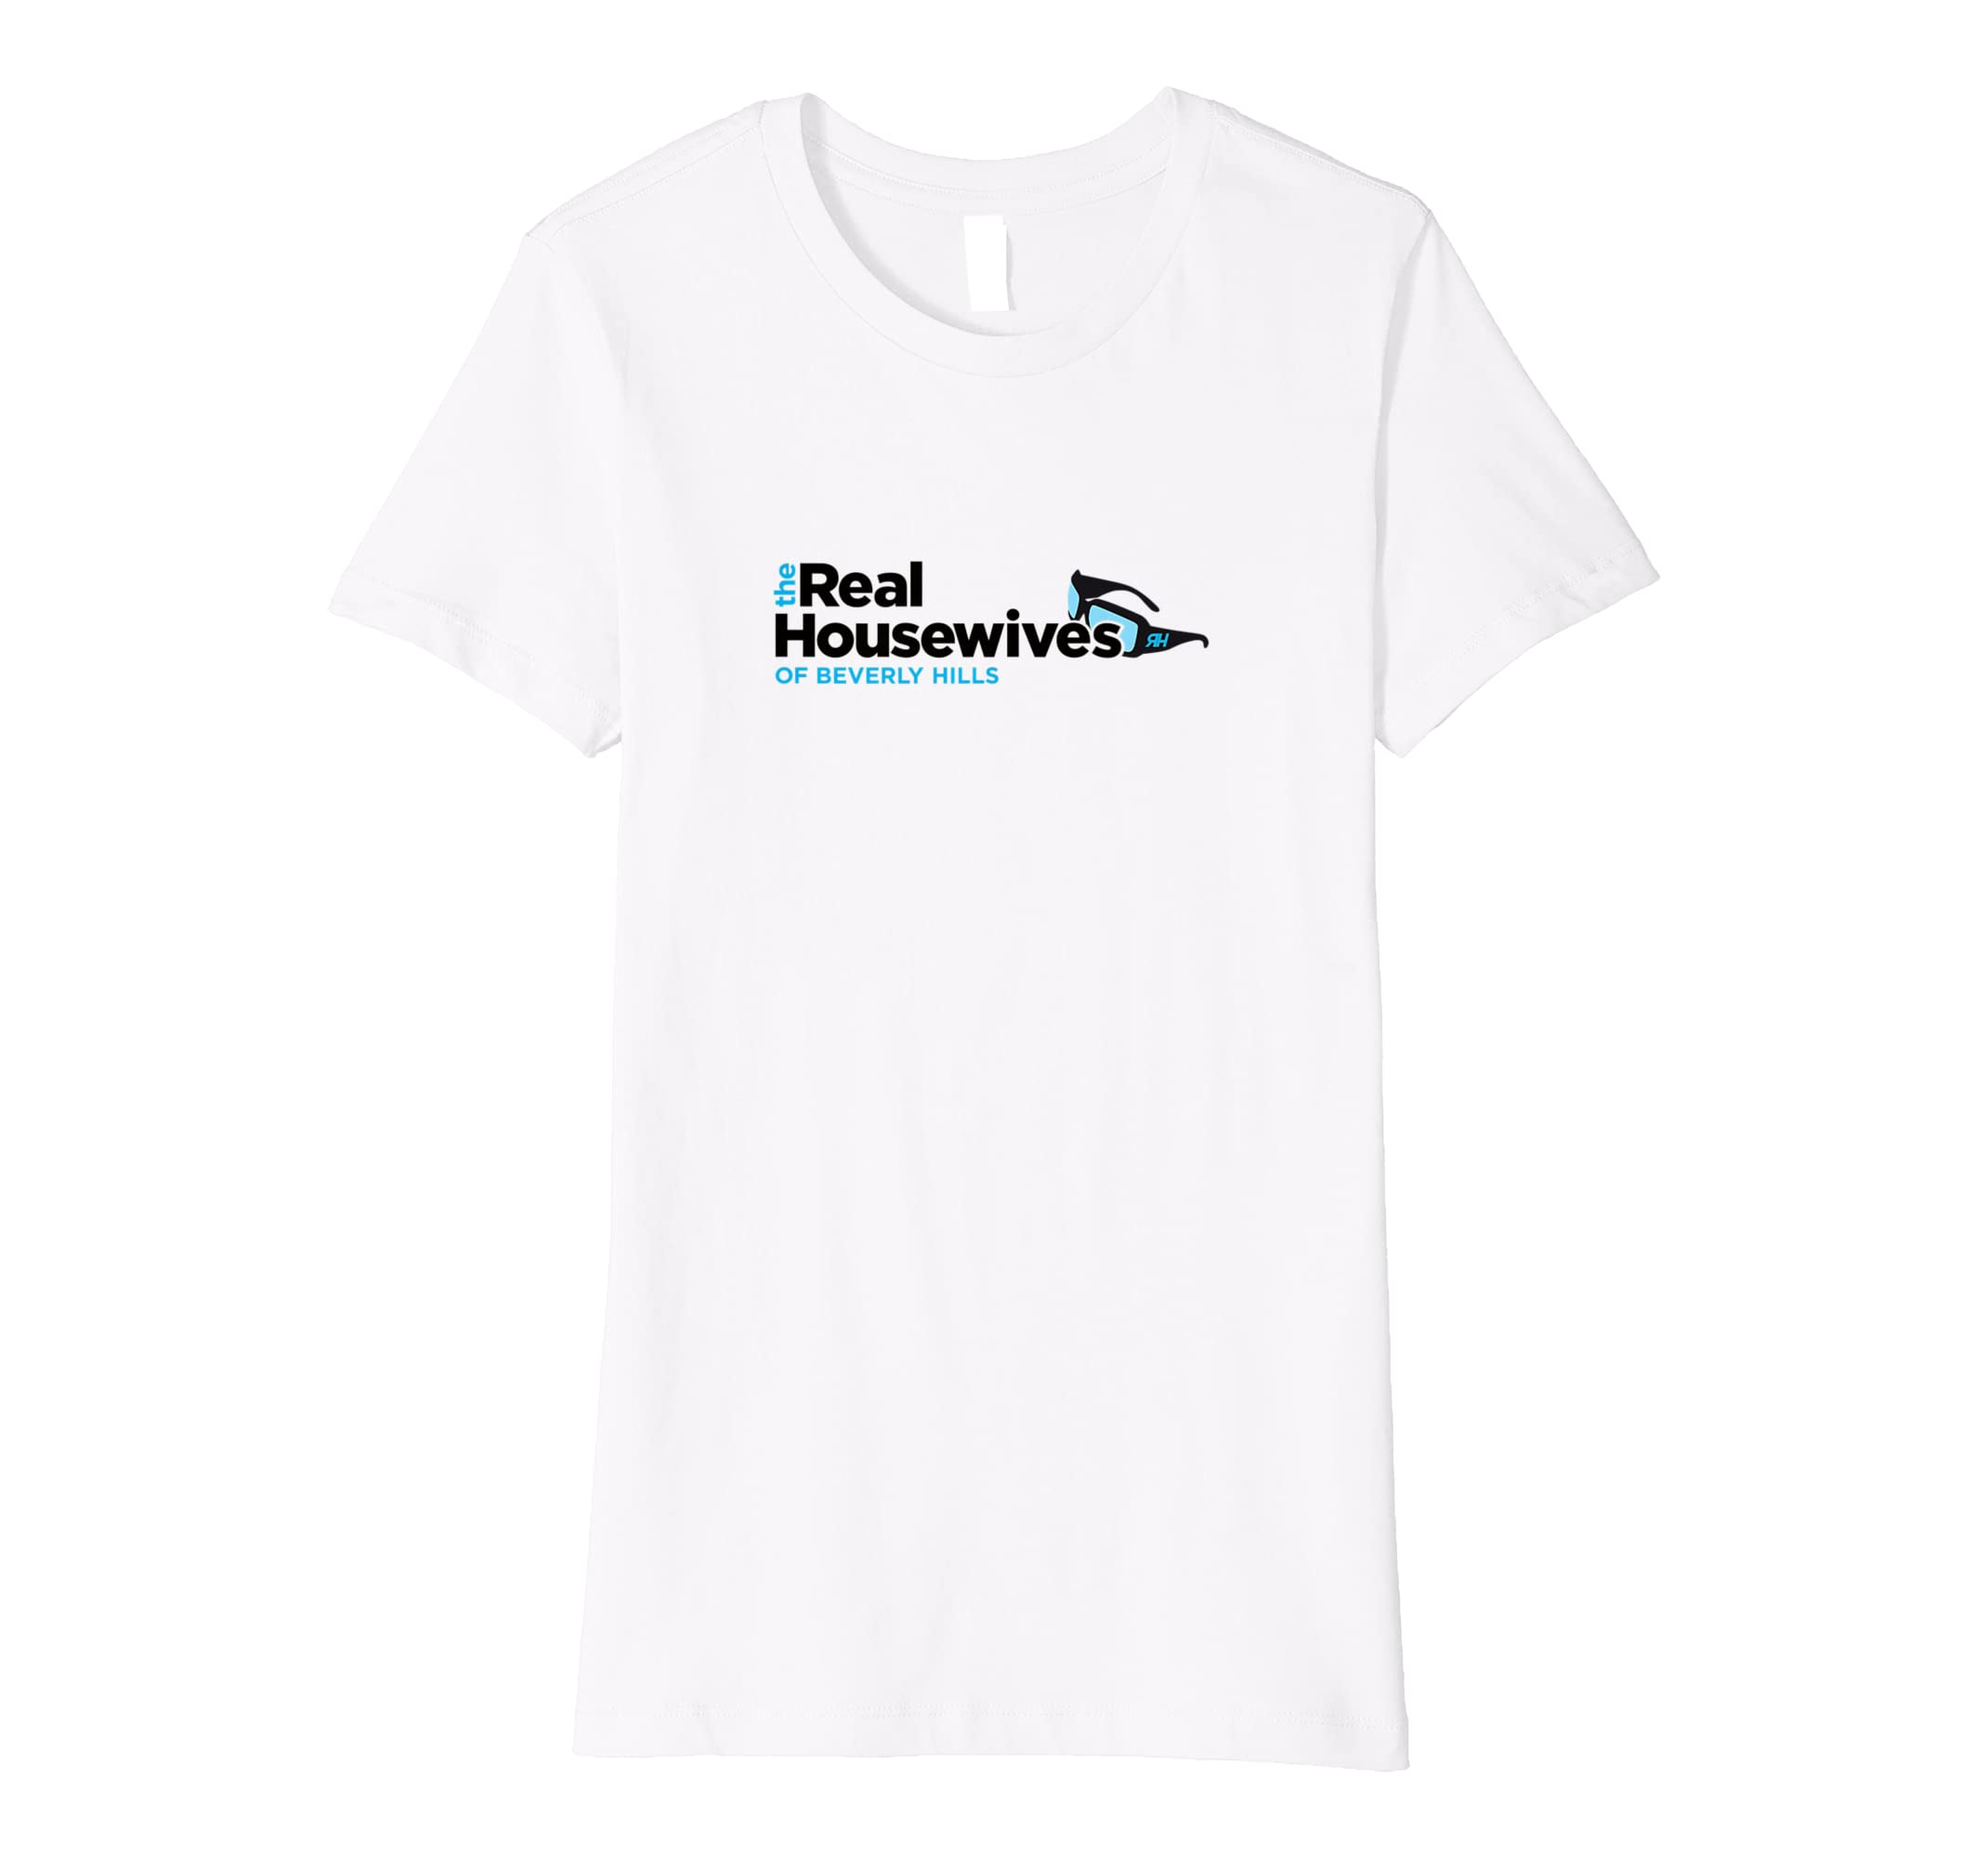 bd42447b8 Amazon.com: Womens The Real Housewives of Beverly Hills Premium T ...